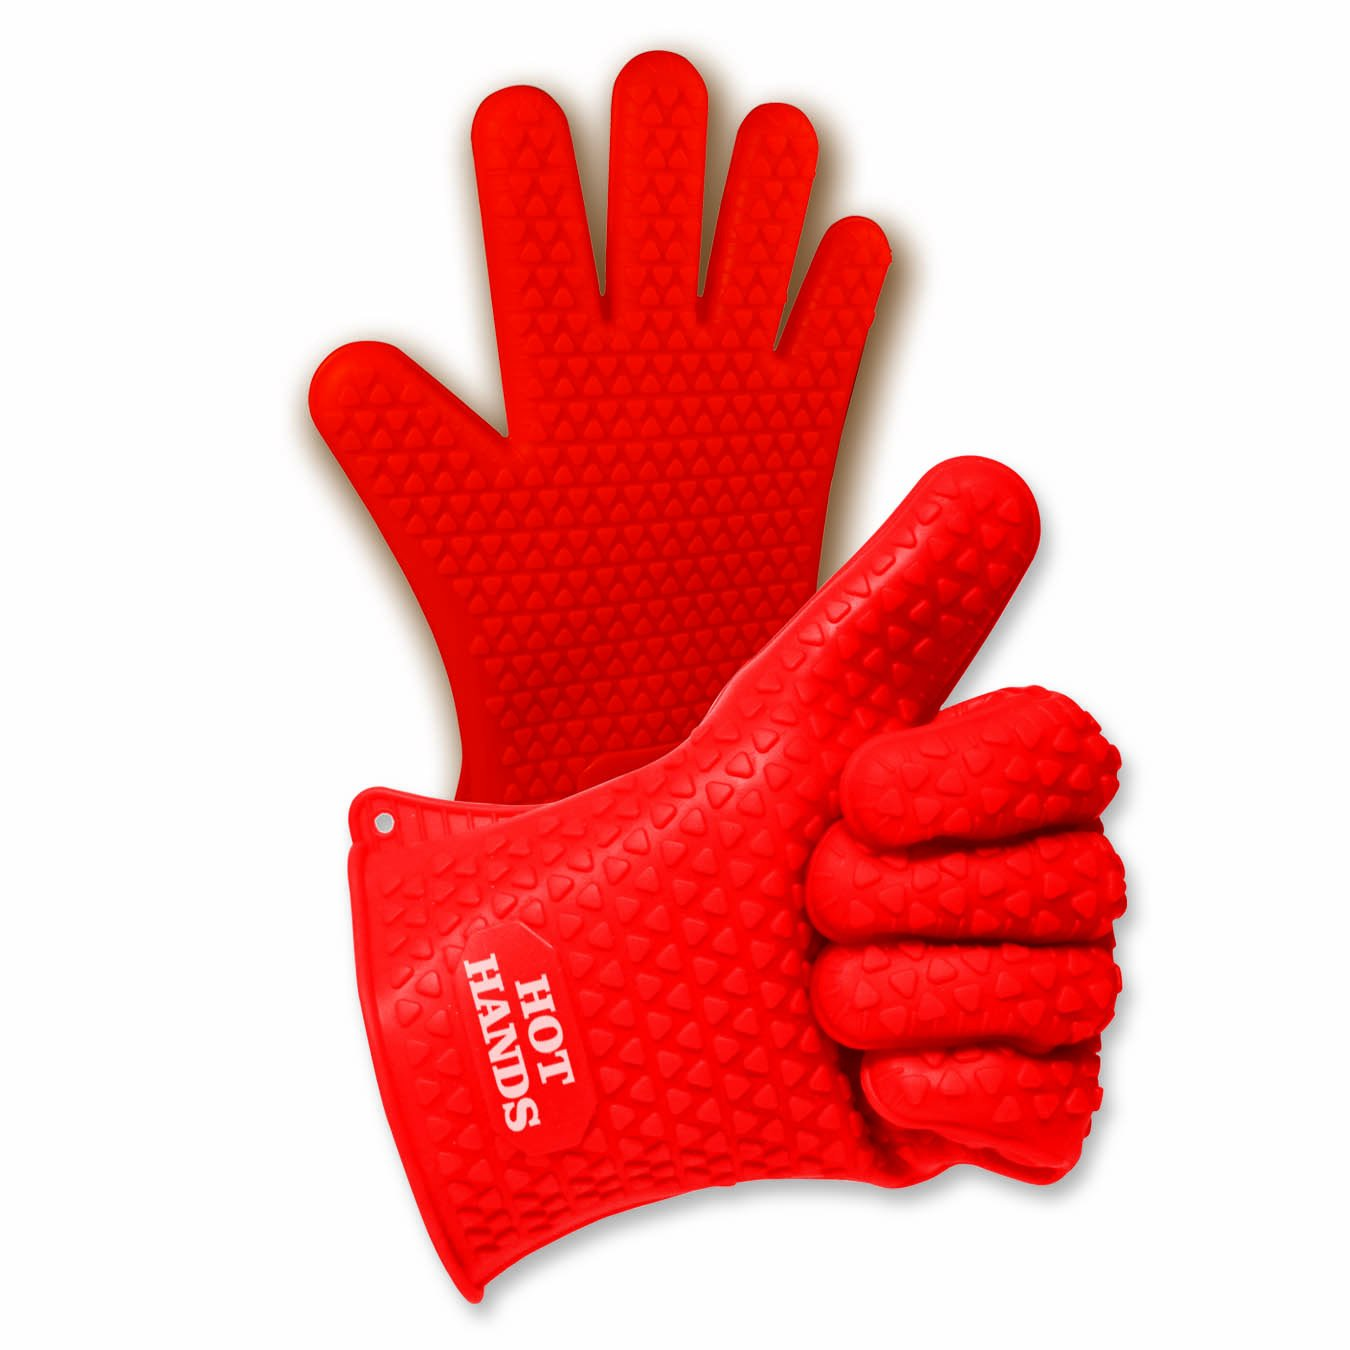 Ontel Hot Hands Heat Resistant Silicone Gloves Mitts for Grilling, BBQ, Kitchen, Cooking, Baking, Pots, Pans, Smoking and Oven